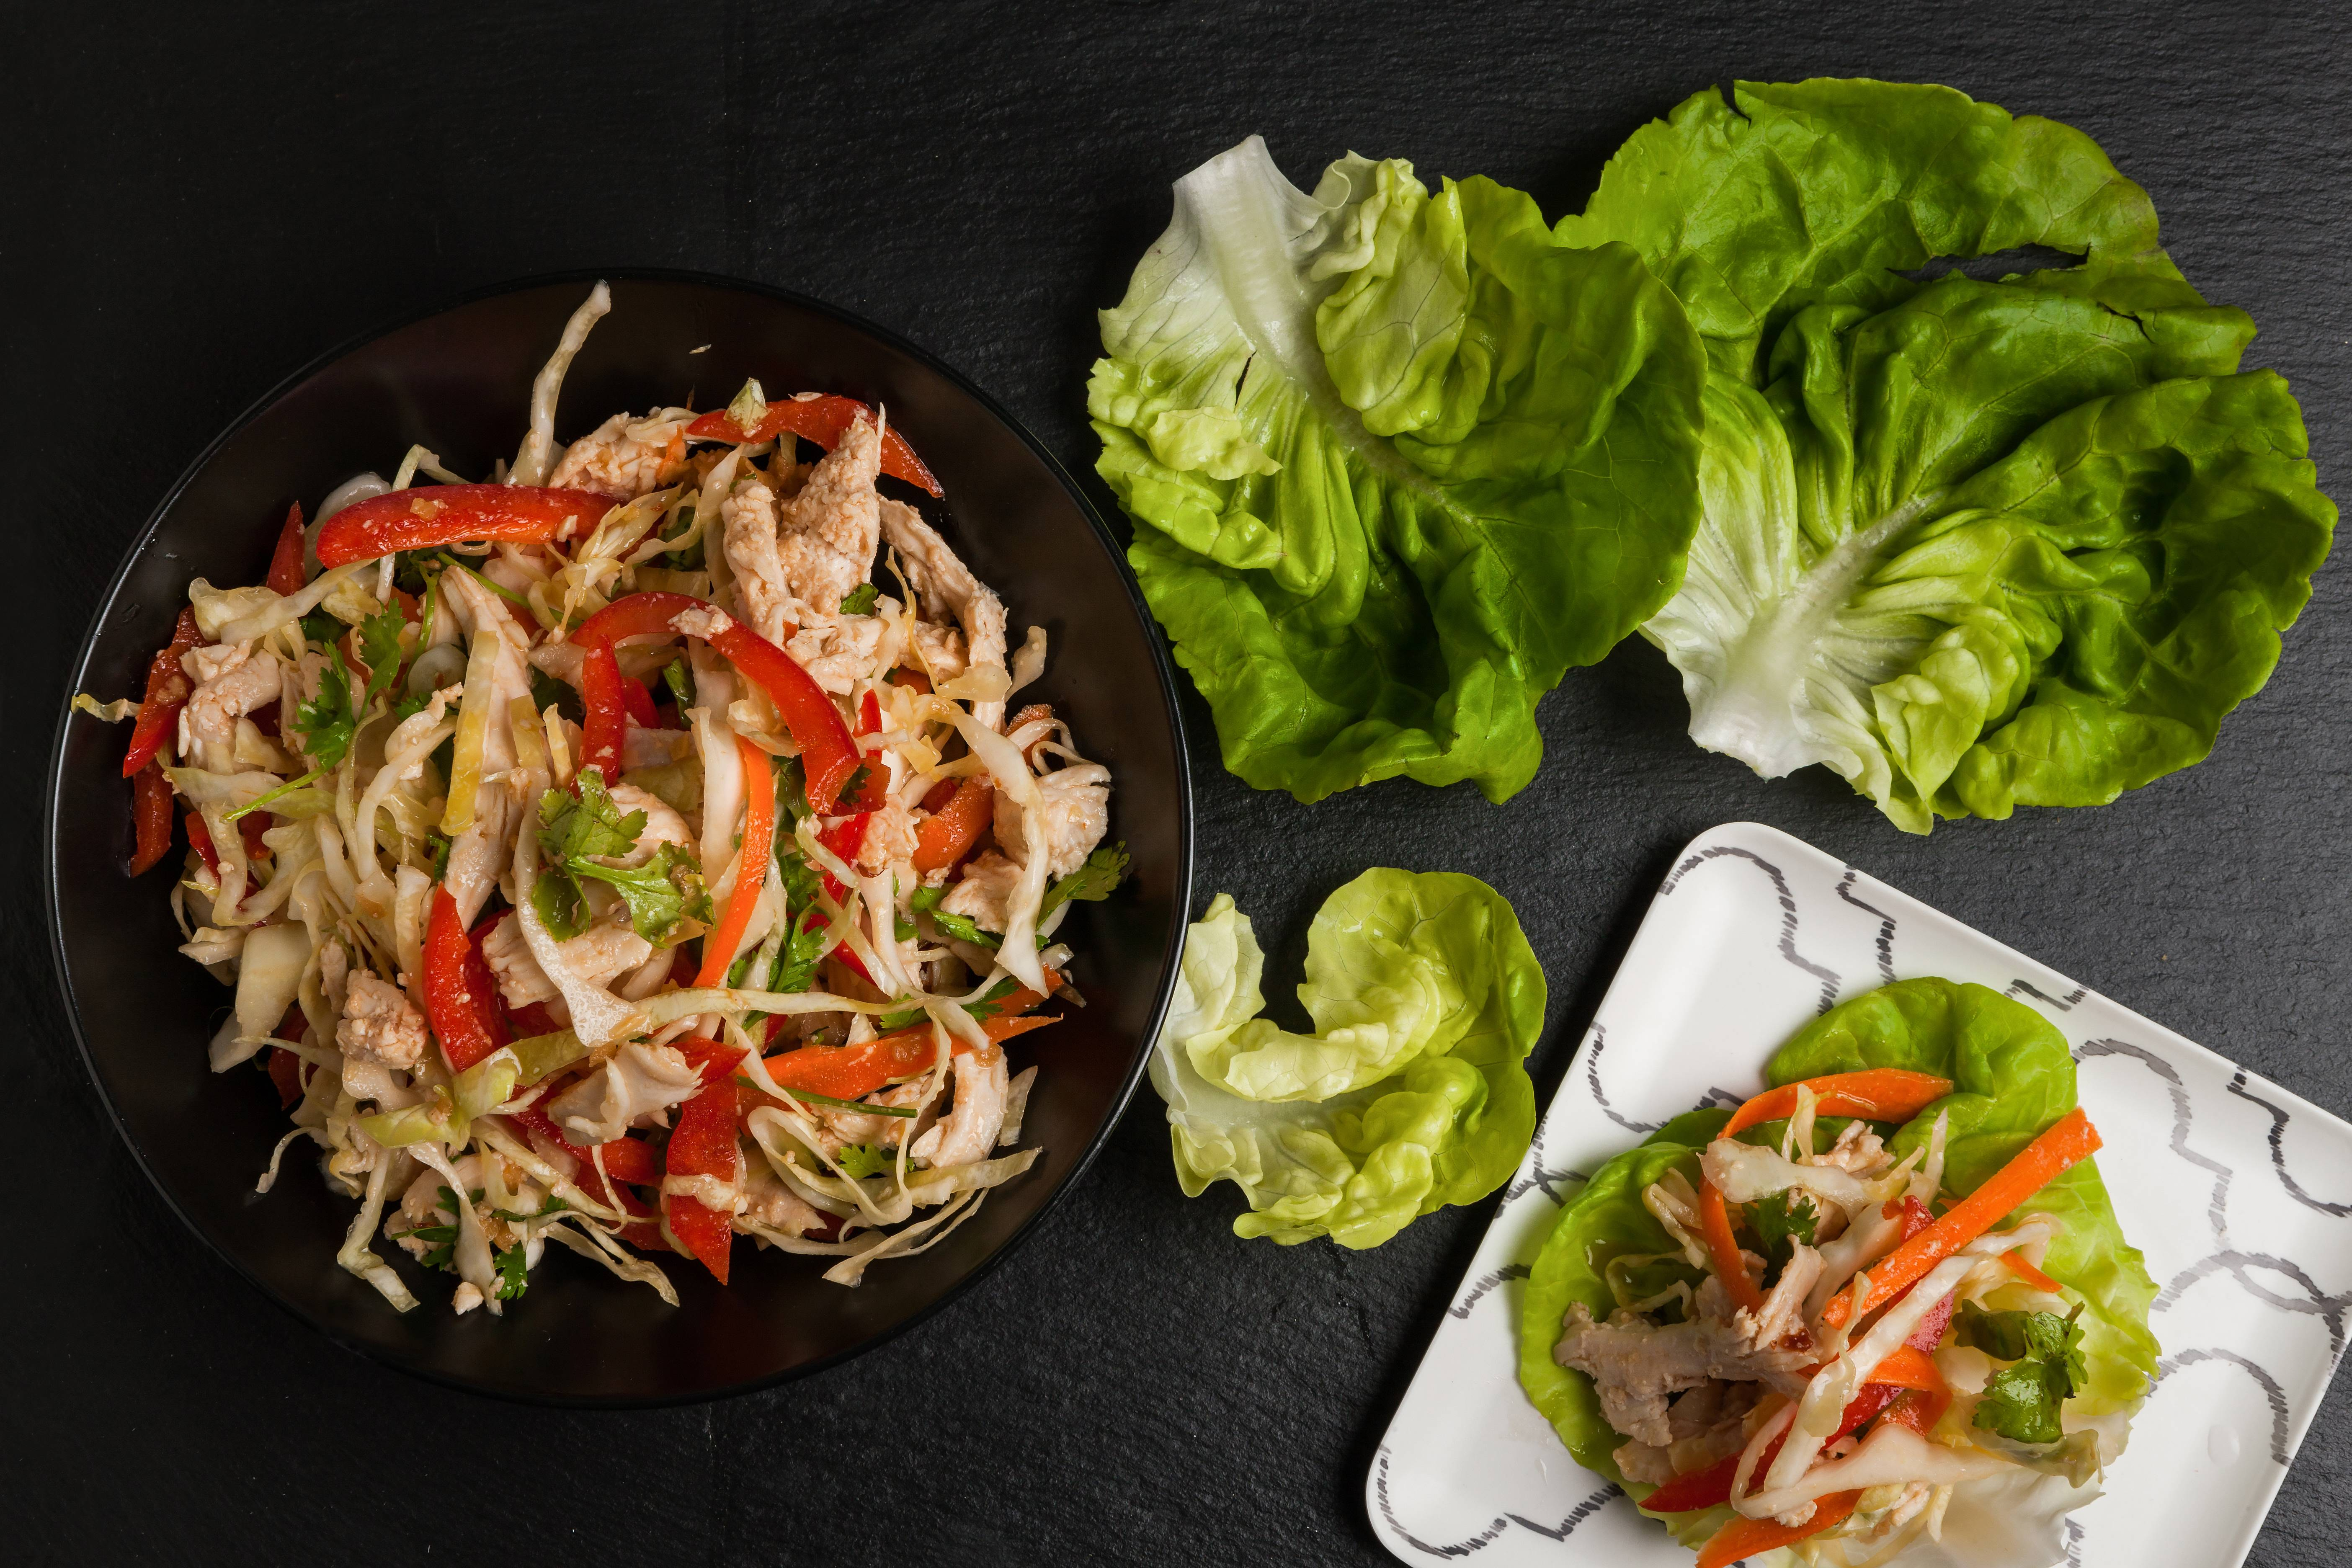 Chicken and Vegetable Salad With Asian Dressing.